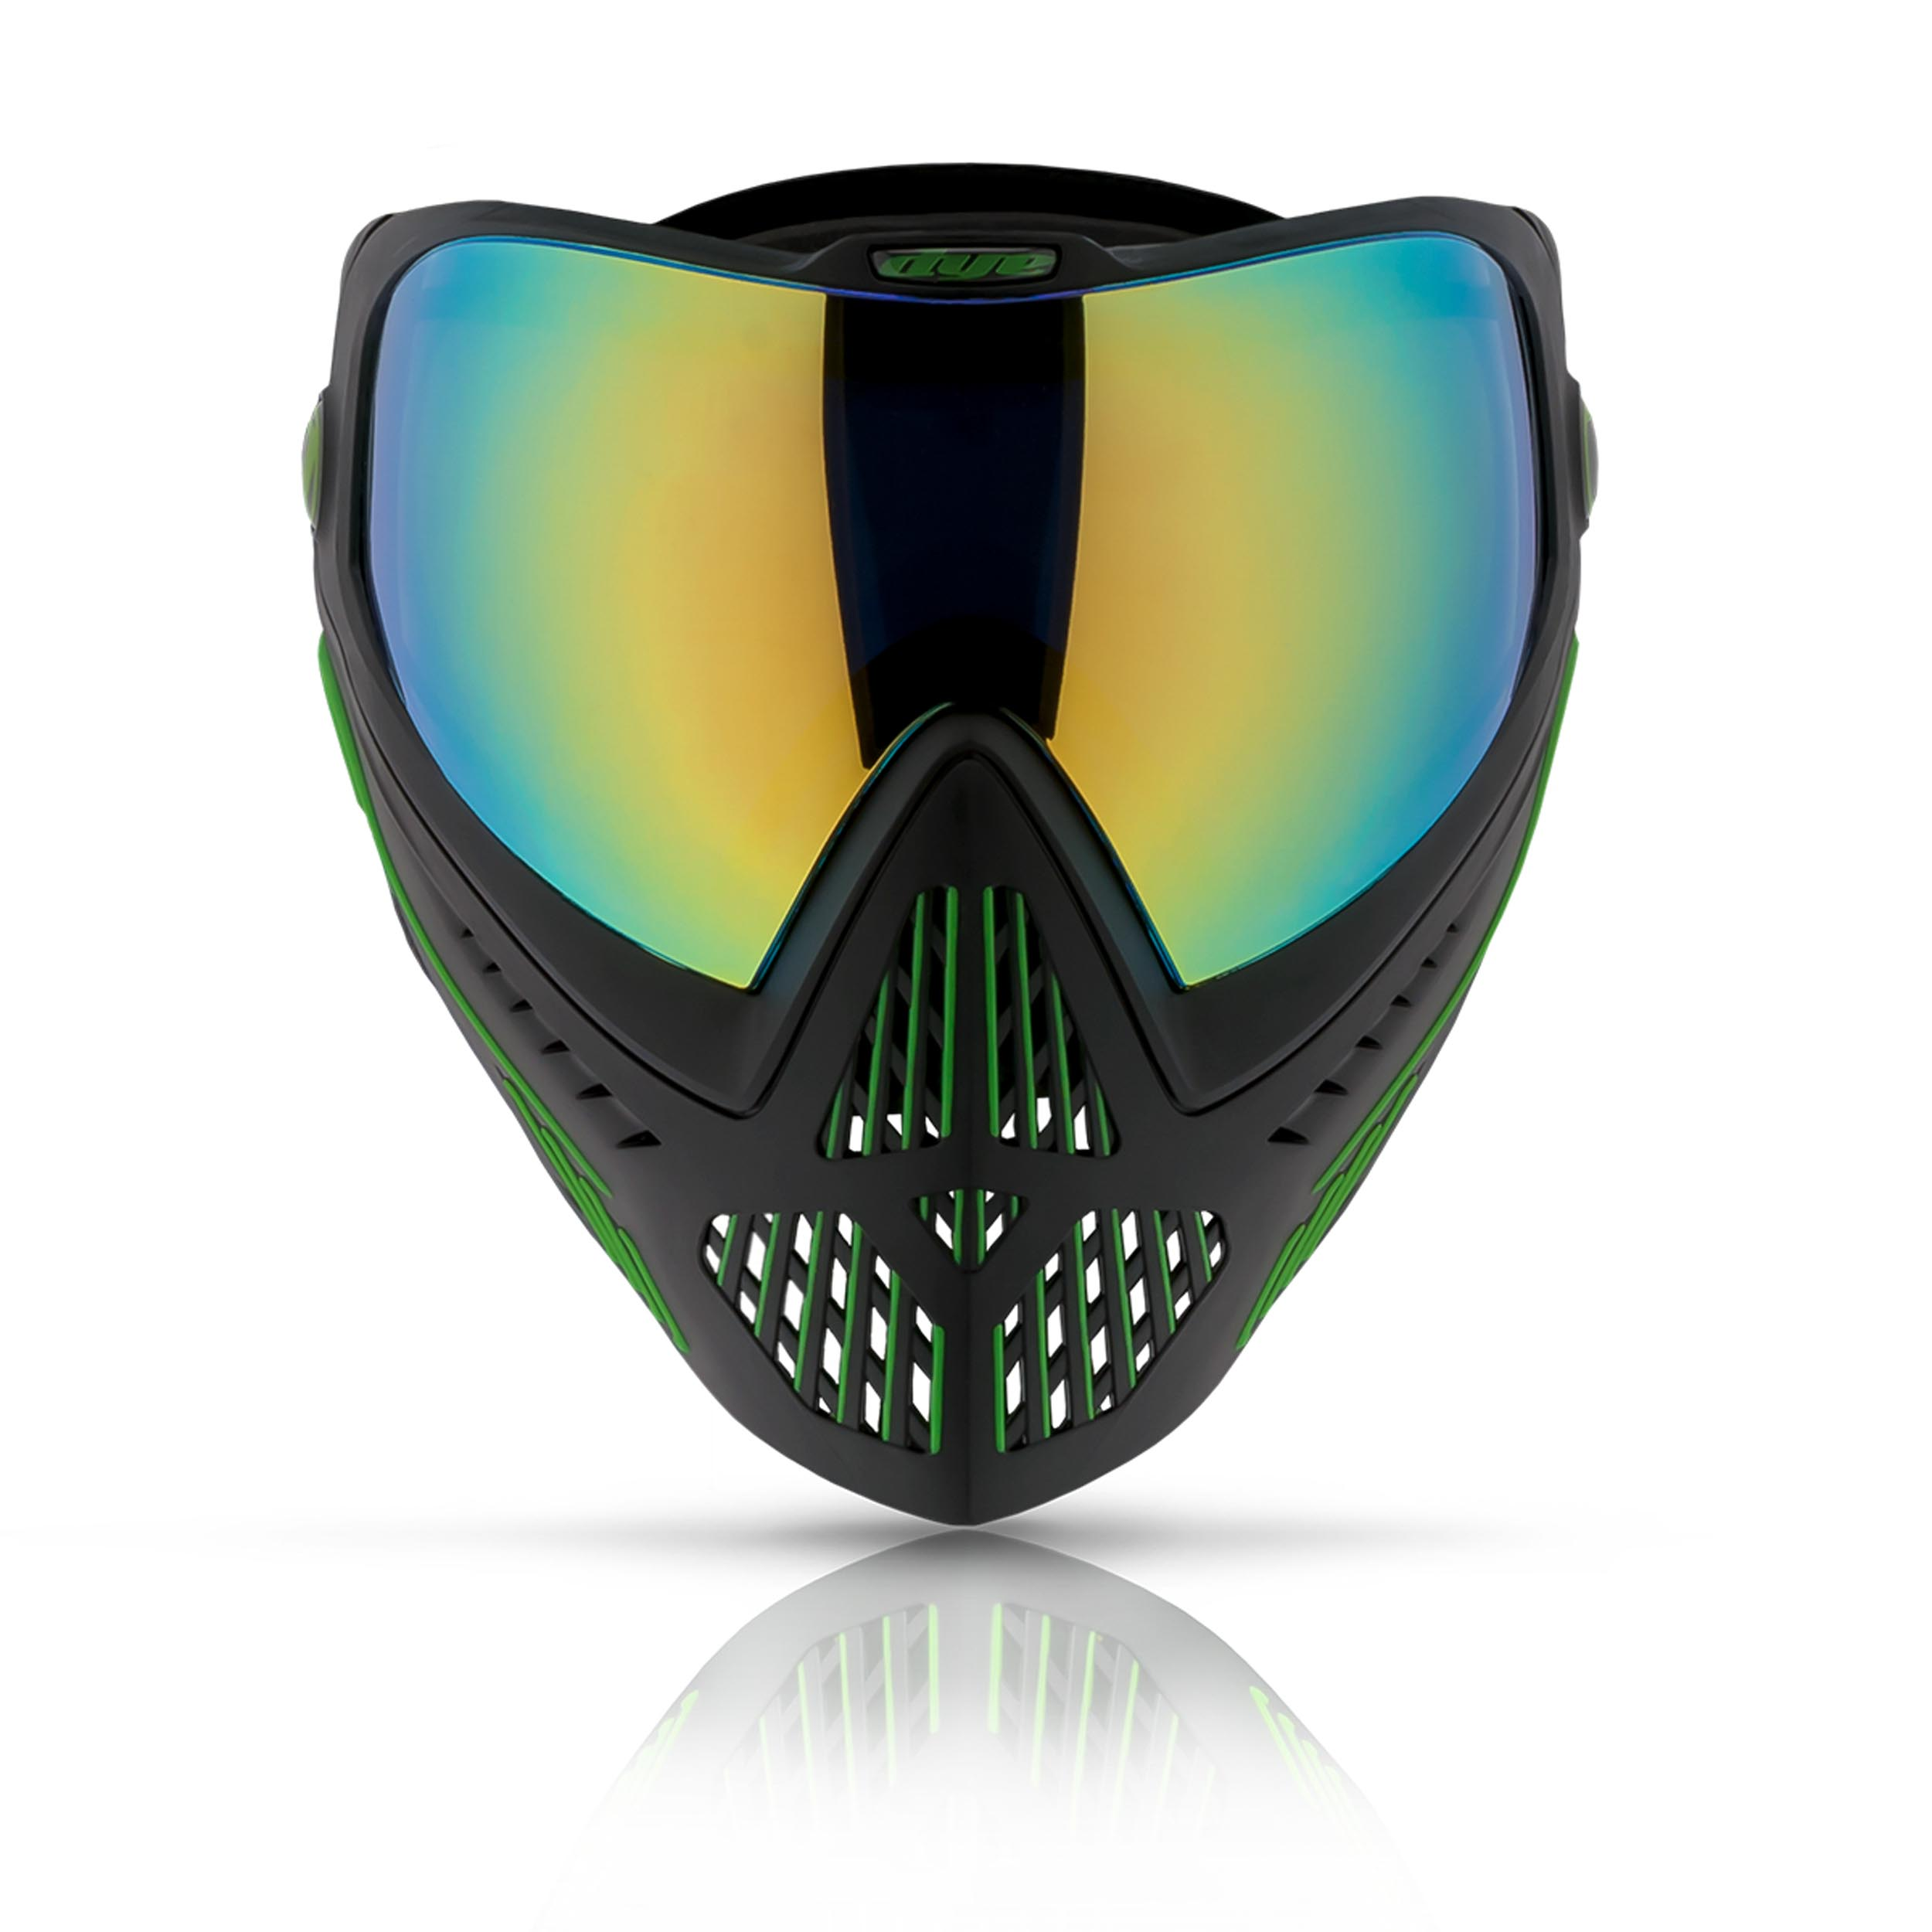 MAS472-2 Dye I5 thermal goggle Onyx Black Gold 2.0 - MAS473